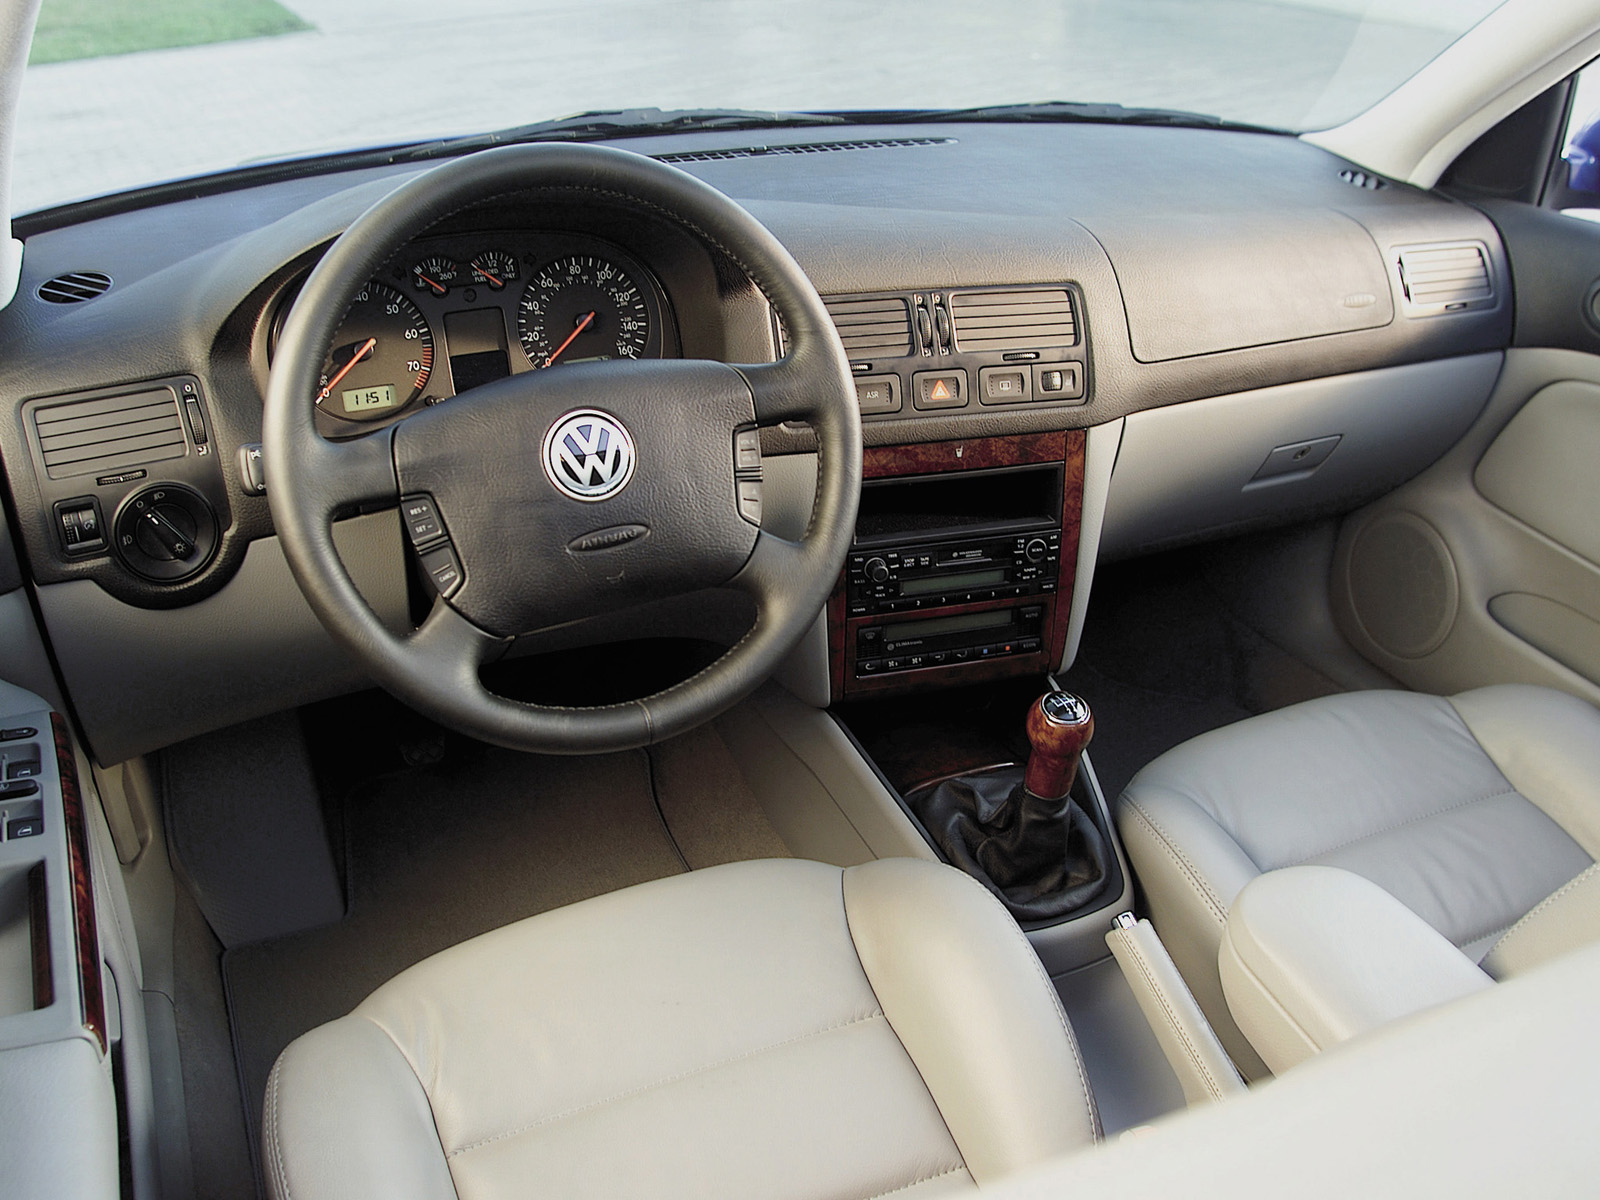 Volkswagen Jetta photo 95140